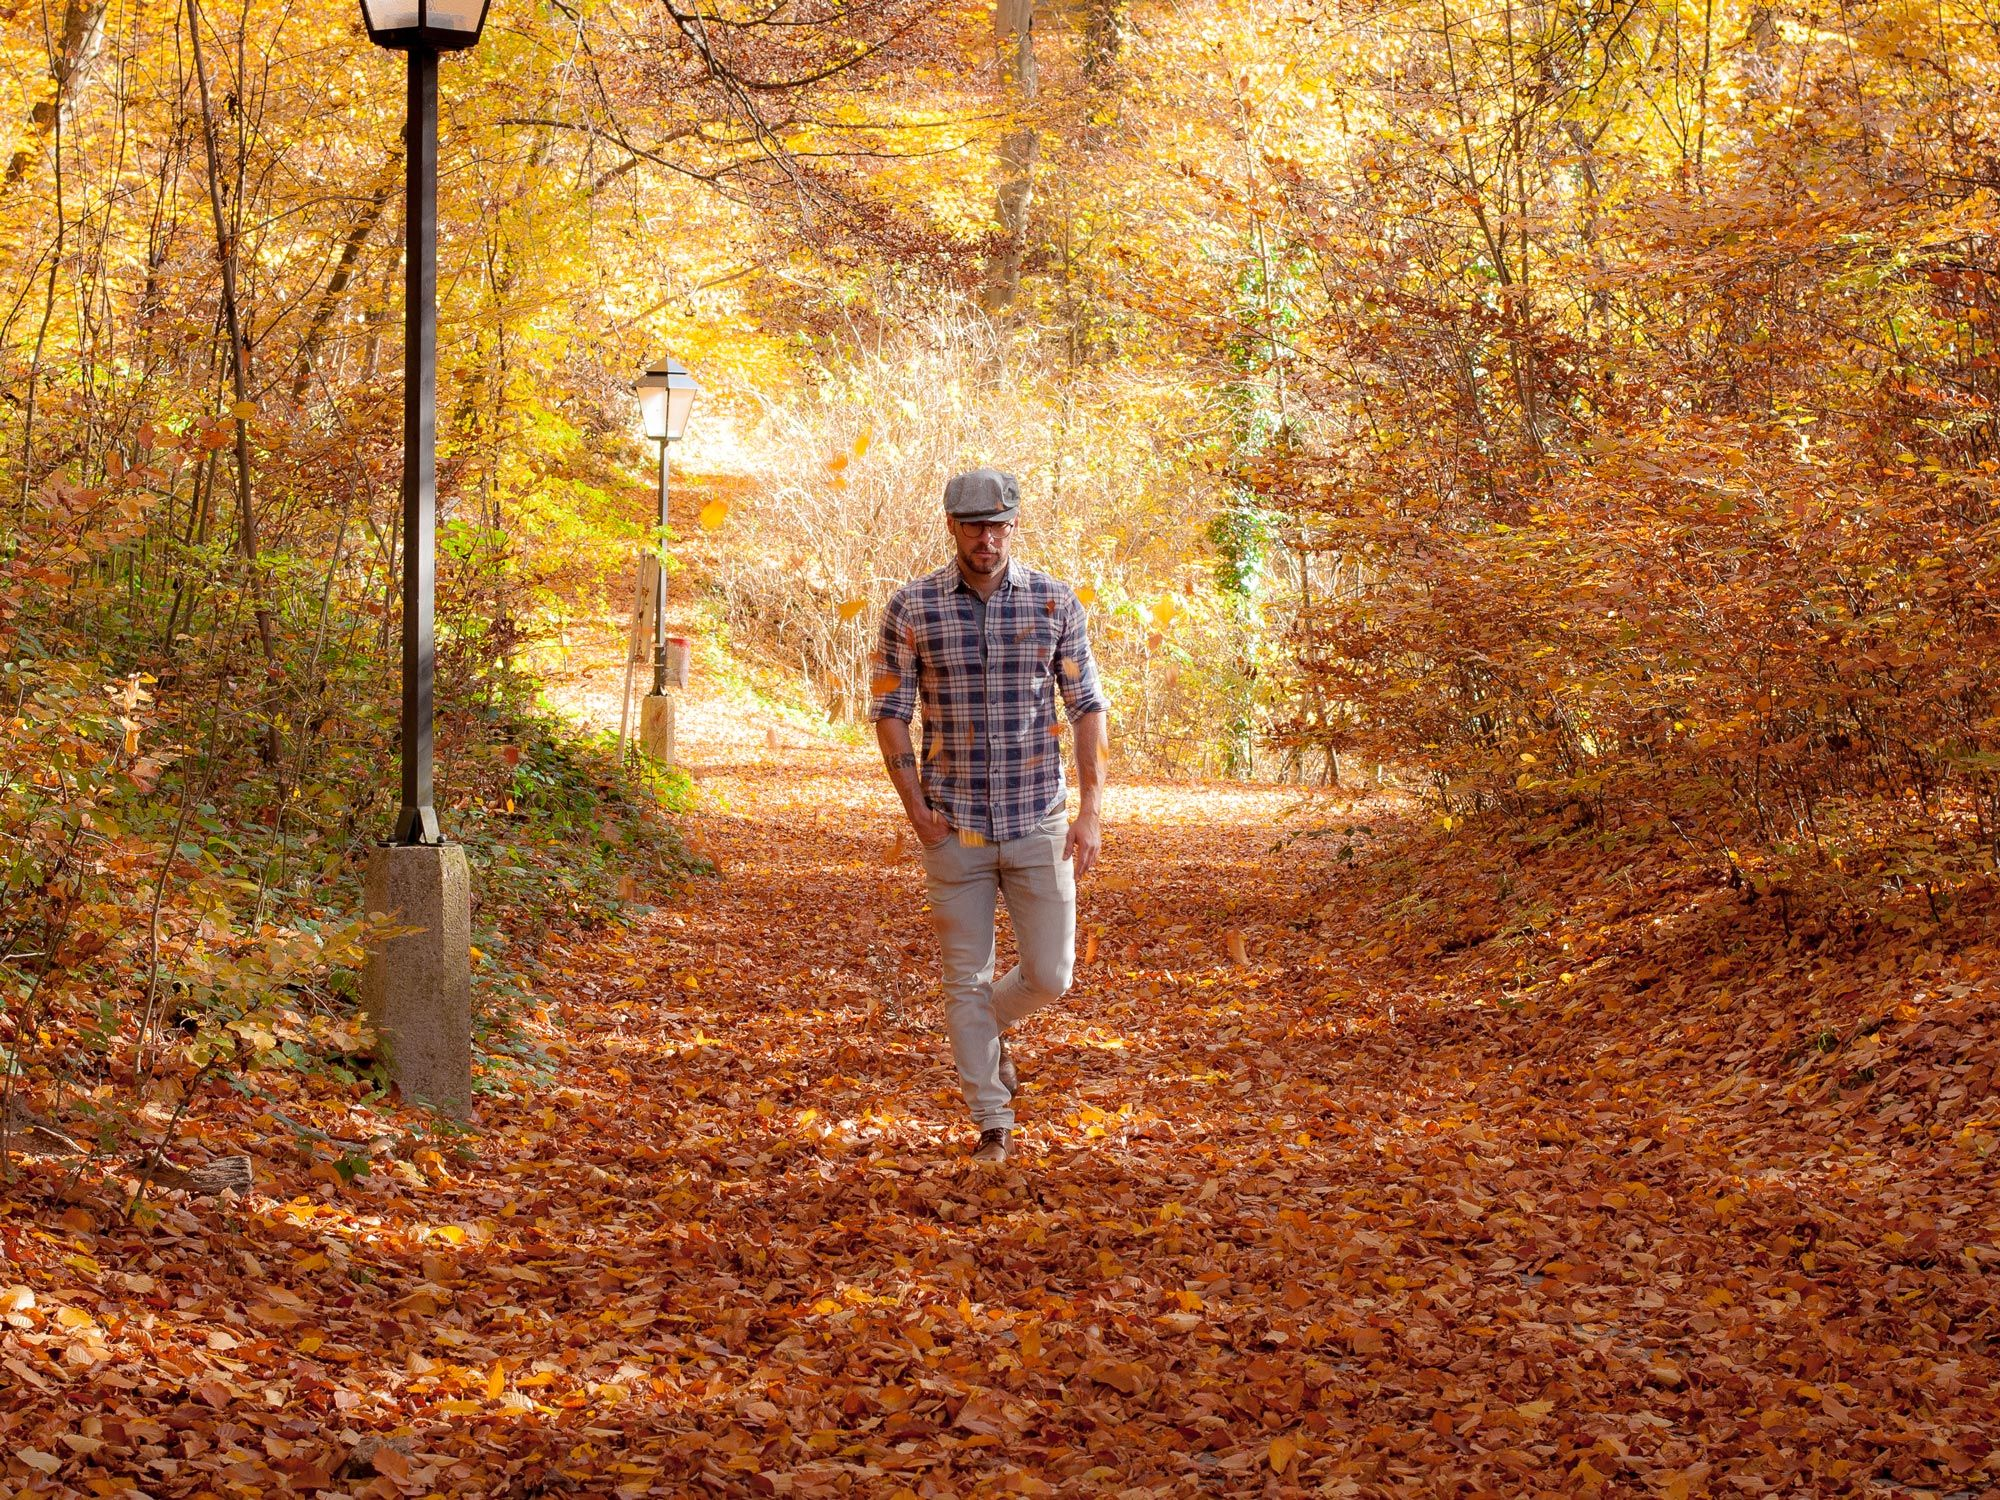 the perfect moment for a autumn walk... right time - right place! great shoot! by www.photoart-genser.com